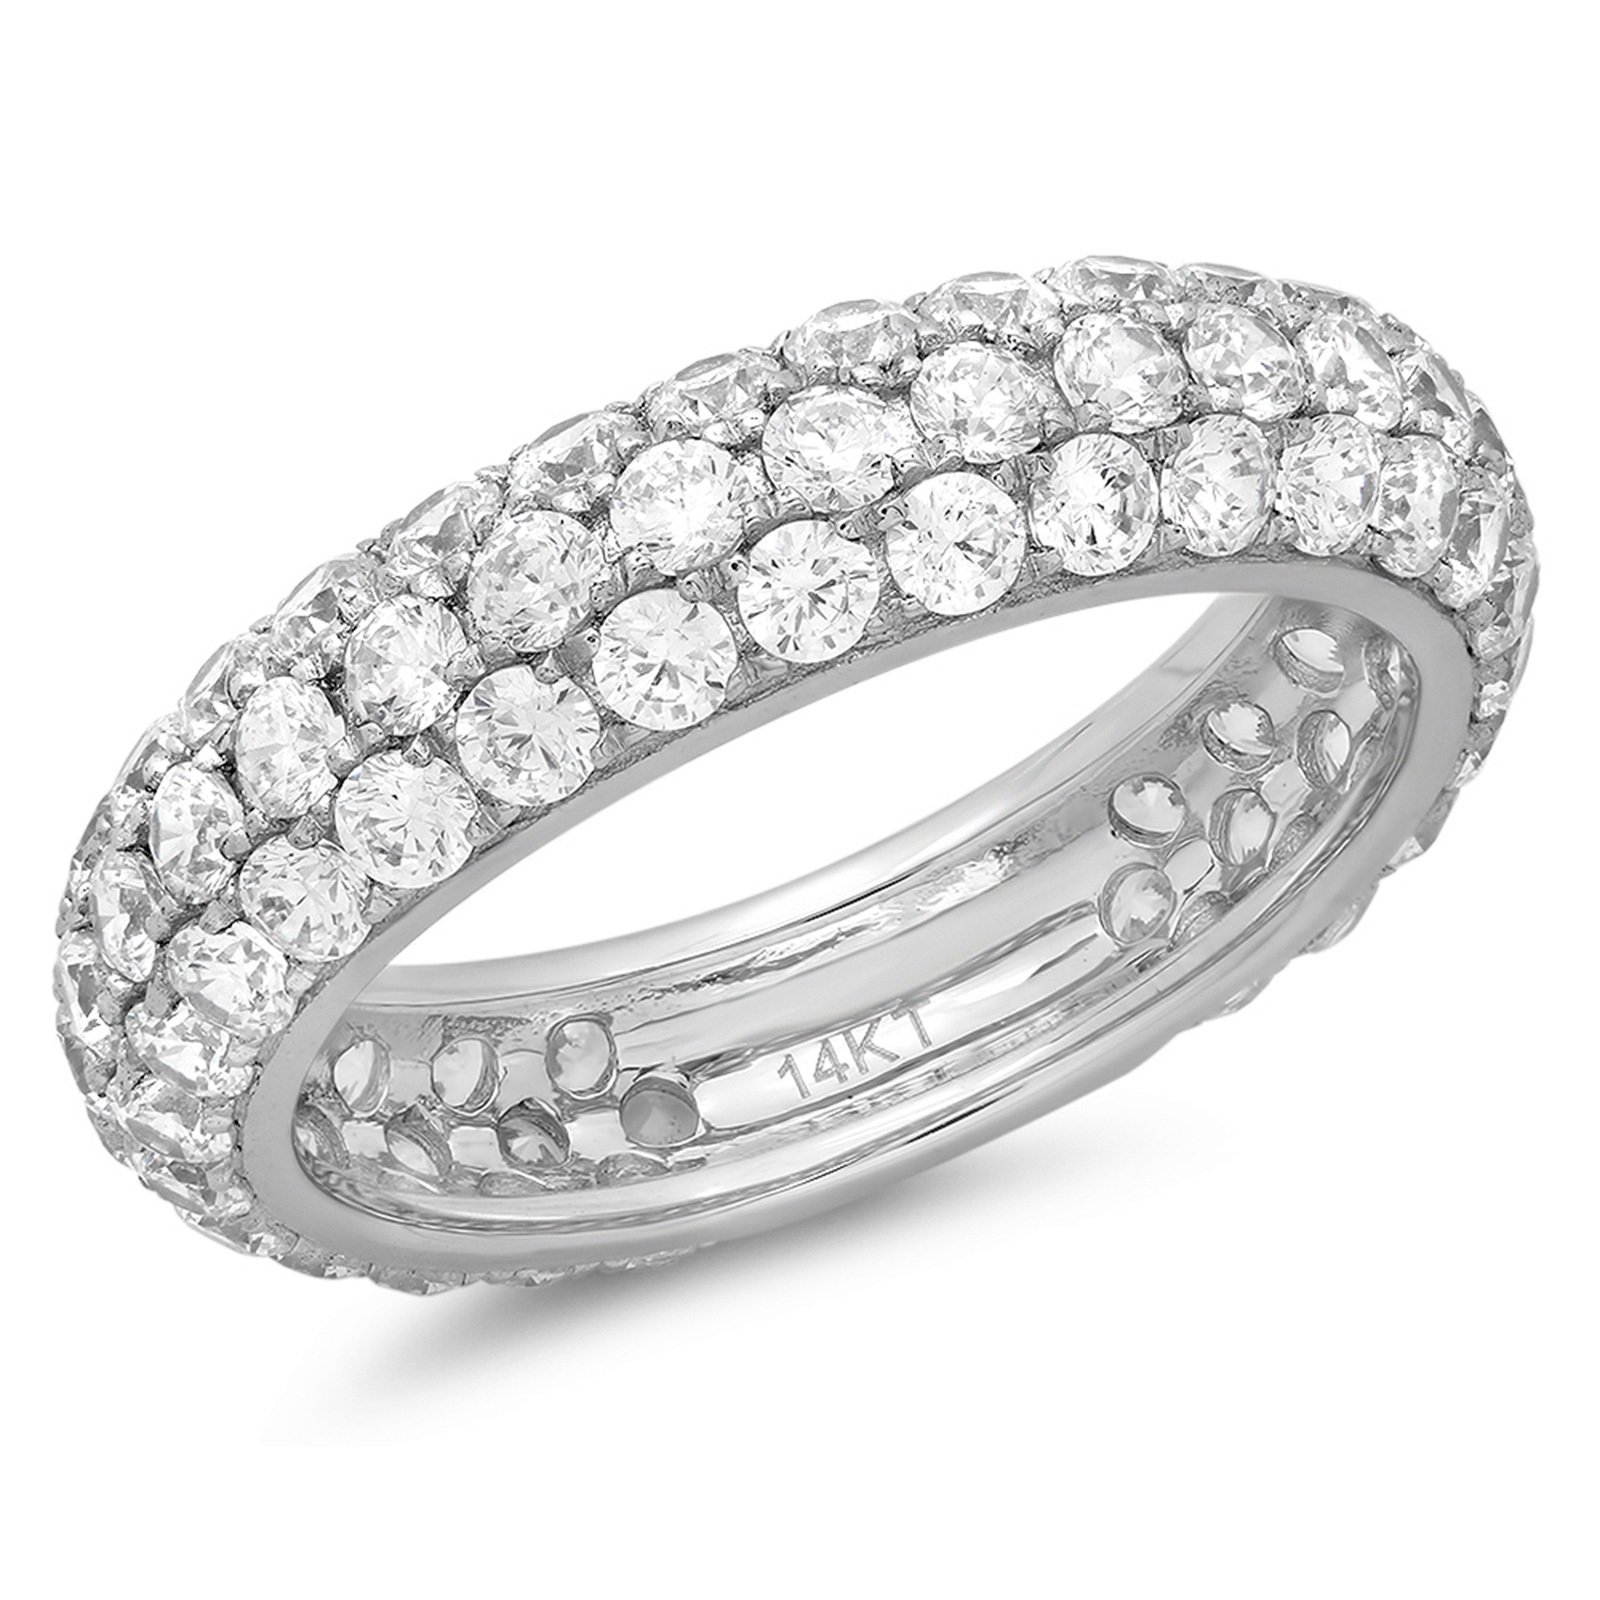 2.75 Ct Round Cut Pave Bridal Set Wedding Engagement Anniversary Band Ring 14Kt White Gold, Size 7.75, Clara Pucci